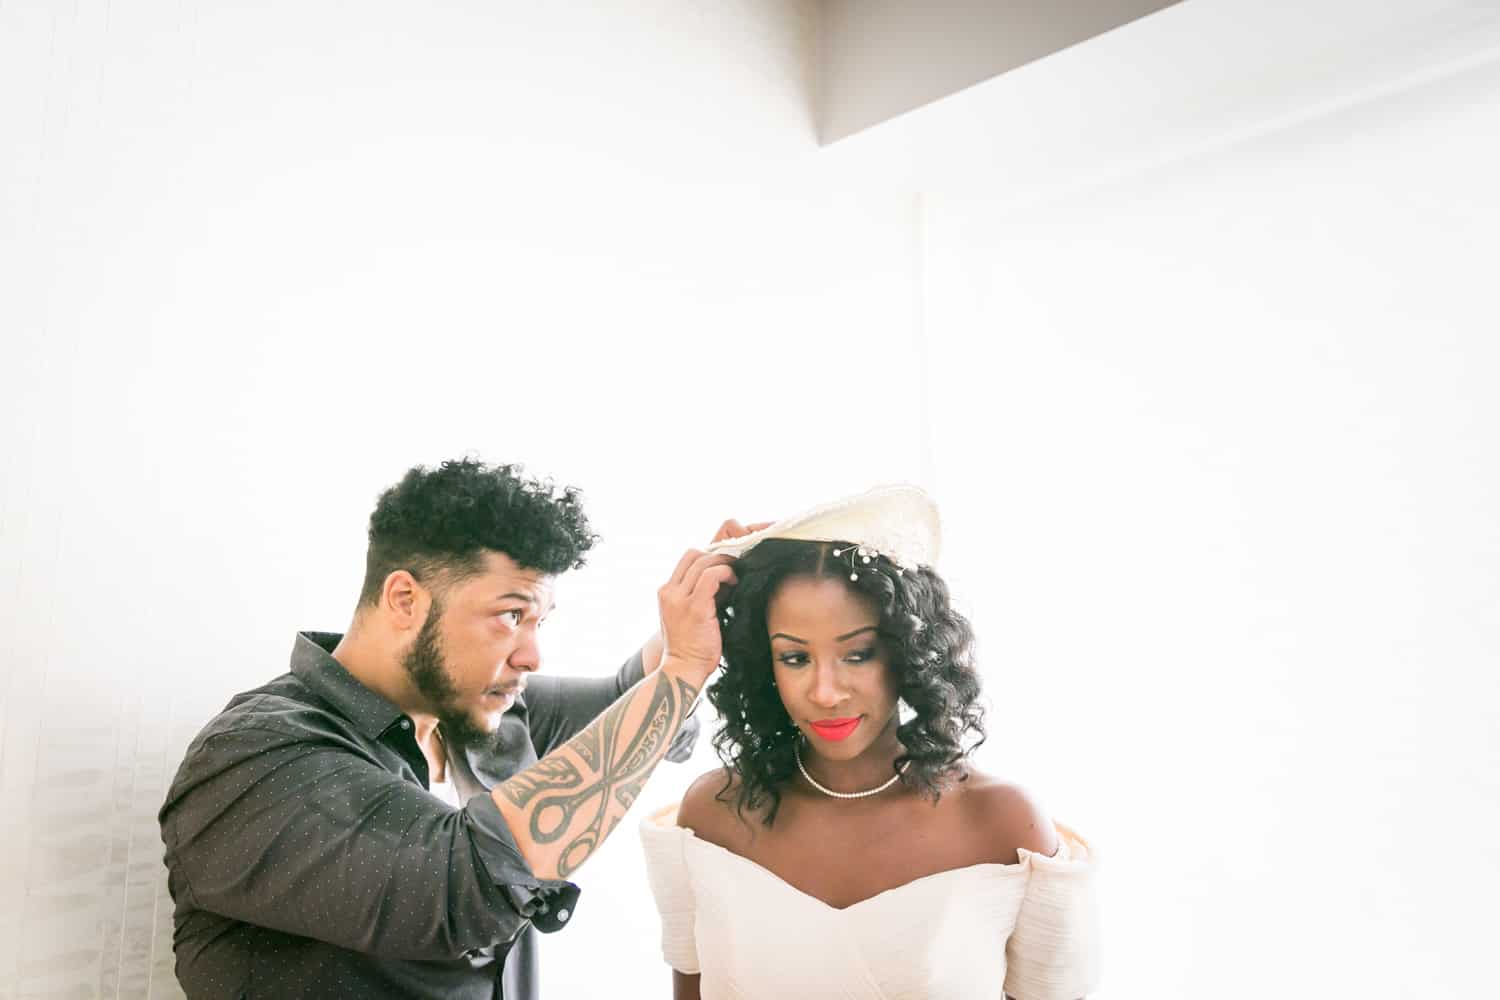 Hair stylist helping bride with hat